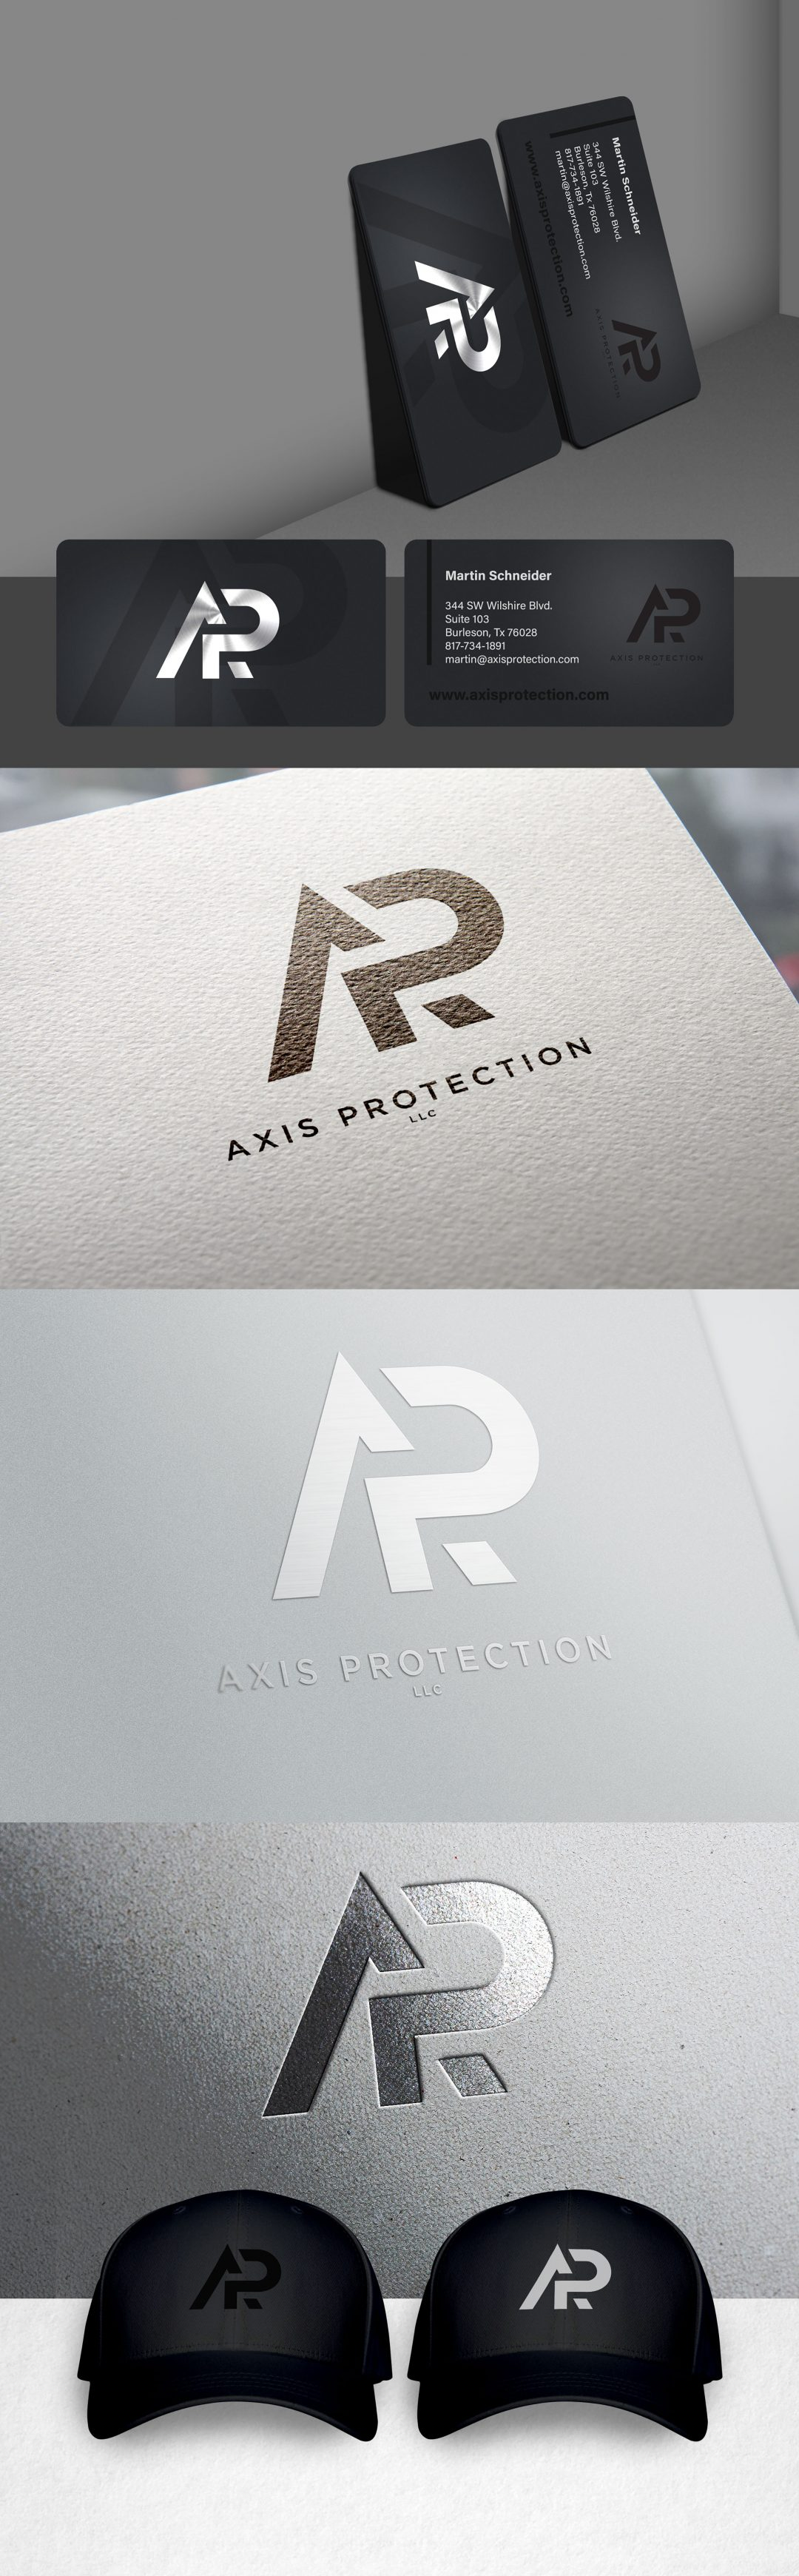 AXIS Protection, LLC